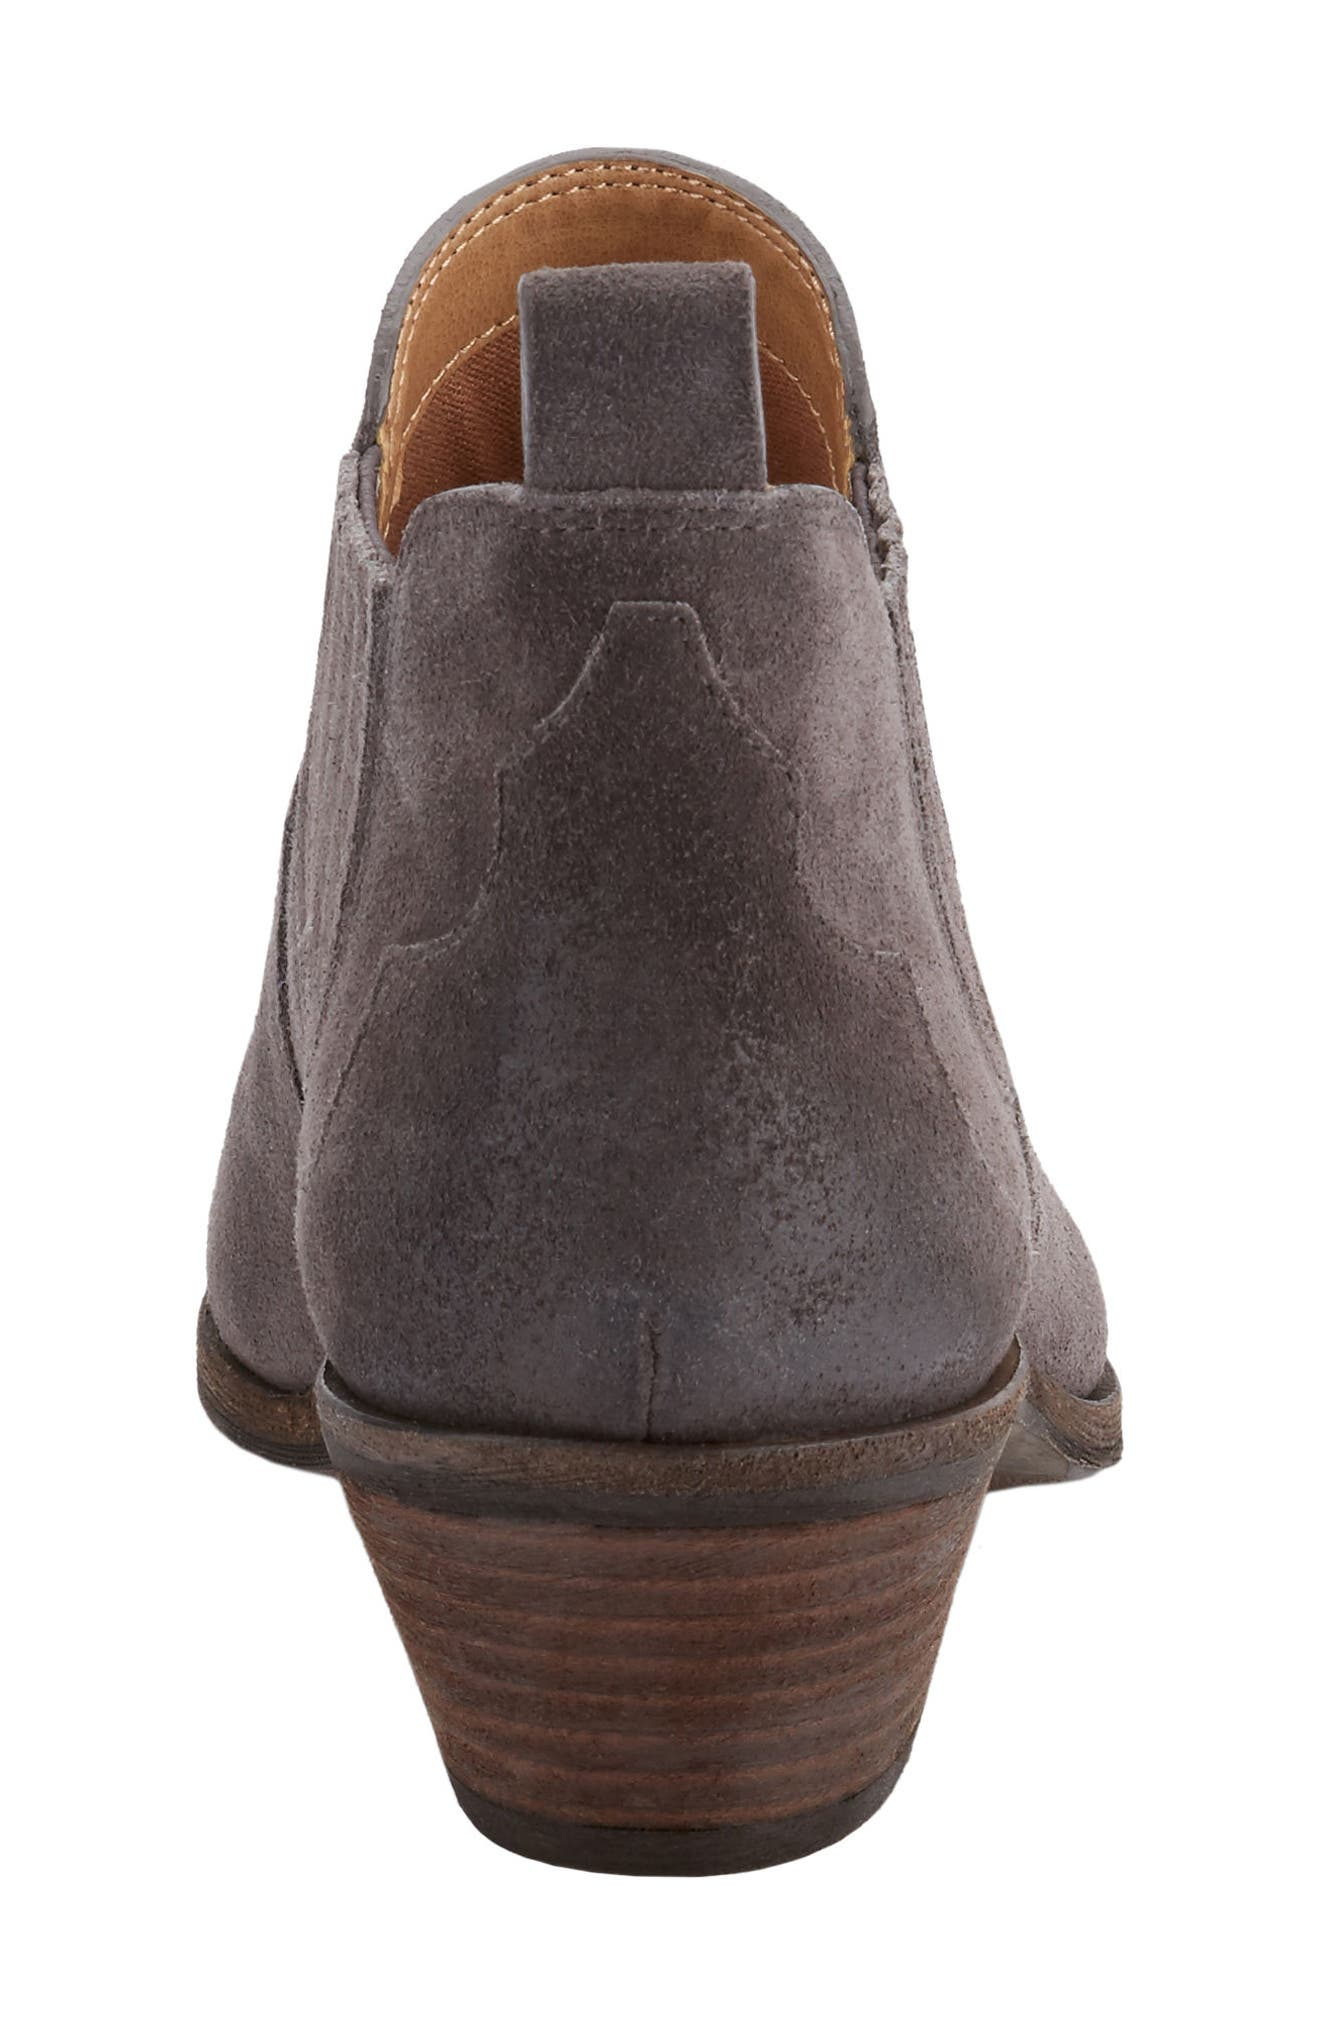 Naomi Bootie,                             Alternate thumbnail 6, color,                             Charcoal Suede